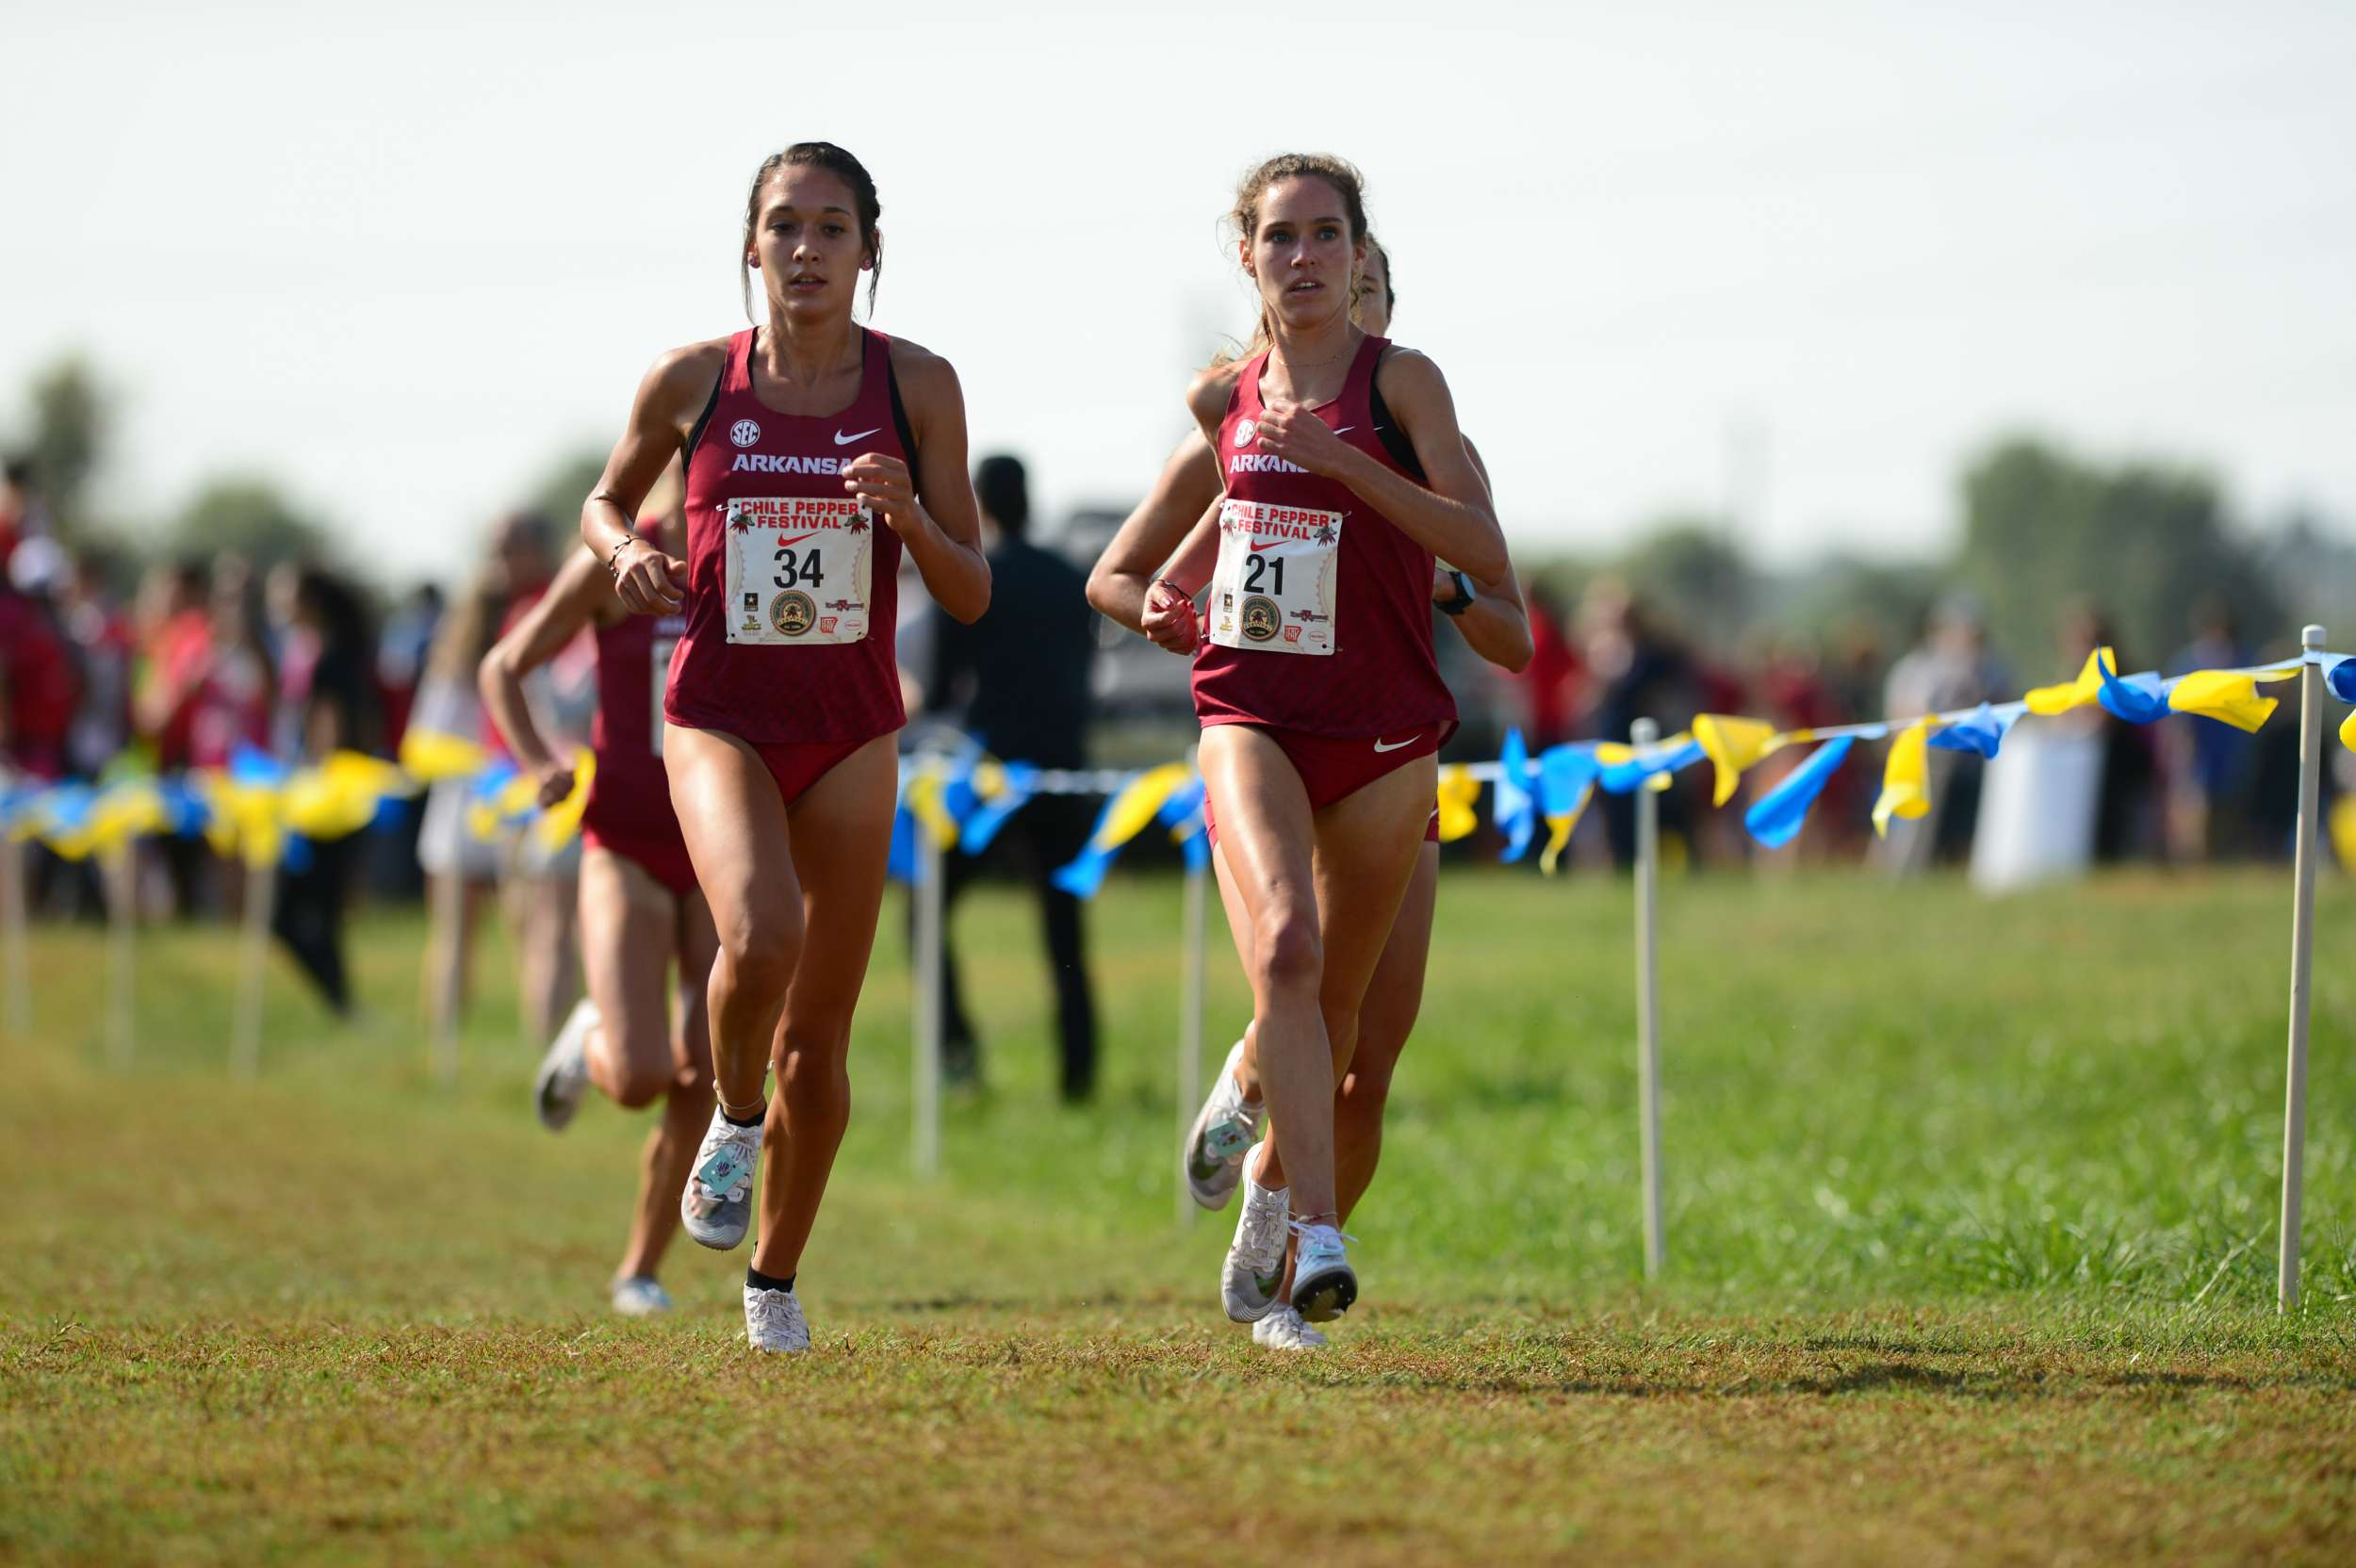 Arkansas Cross Country Regionals 2019